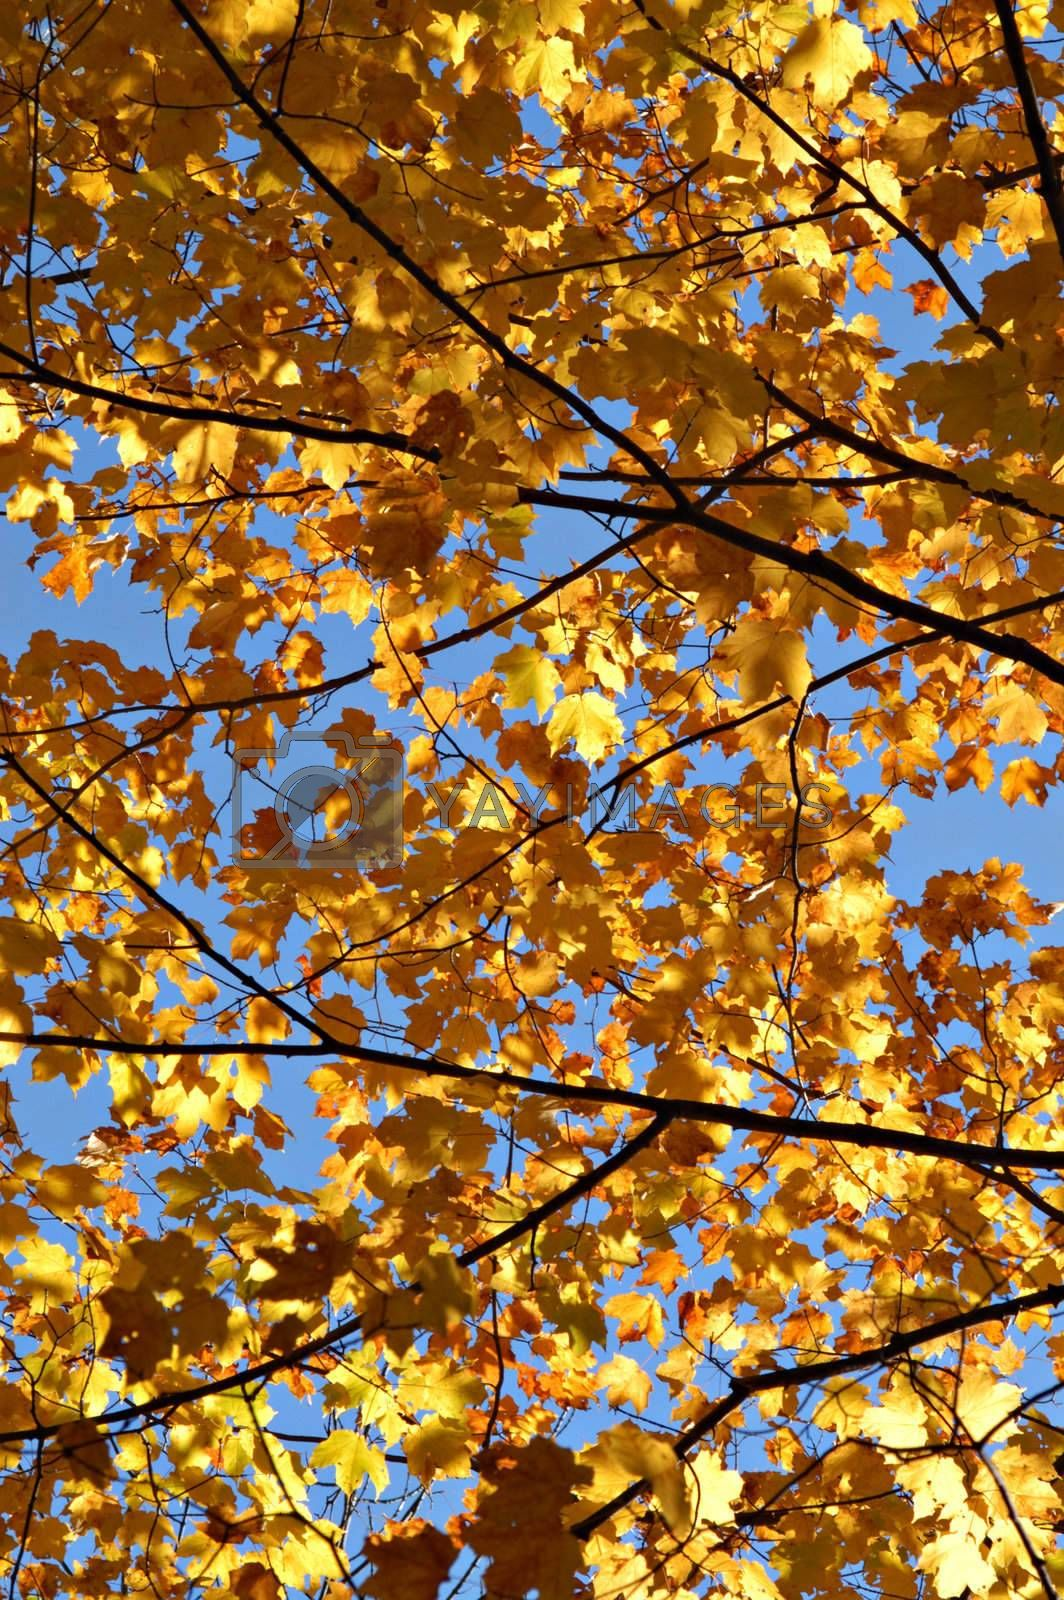 Vibrant golden leaves in fall against blue sky.